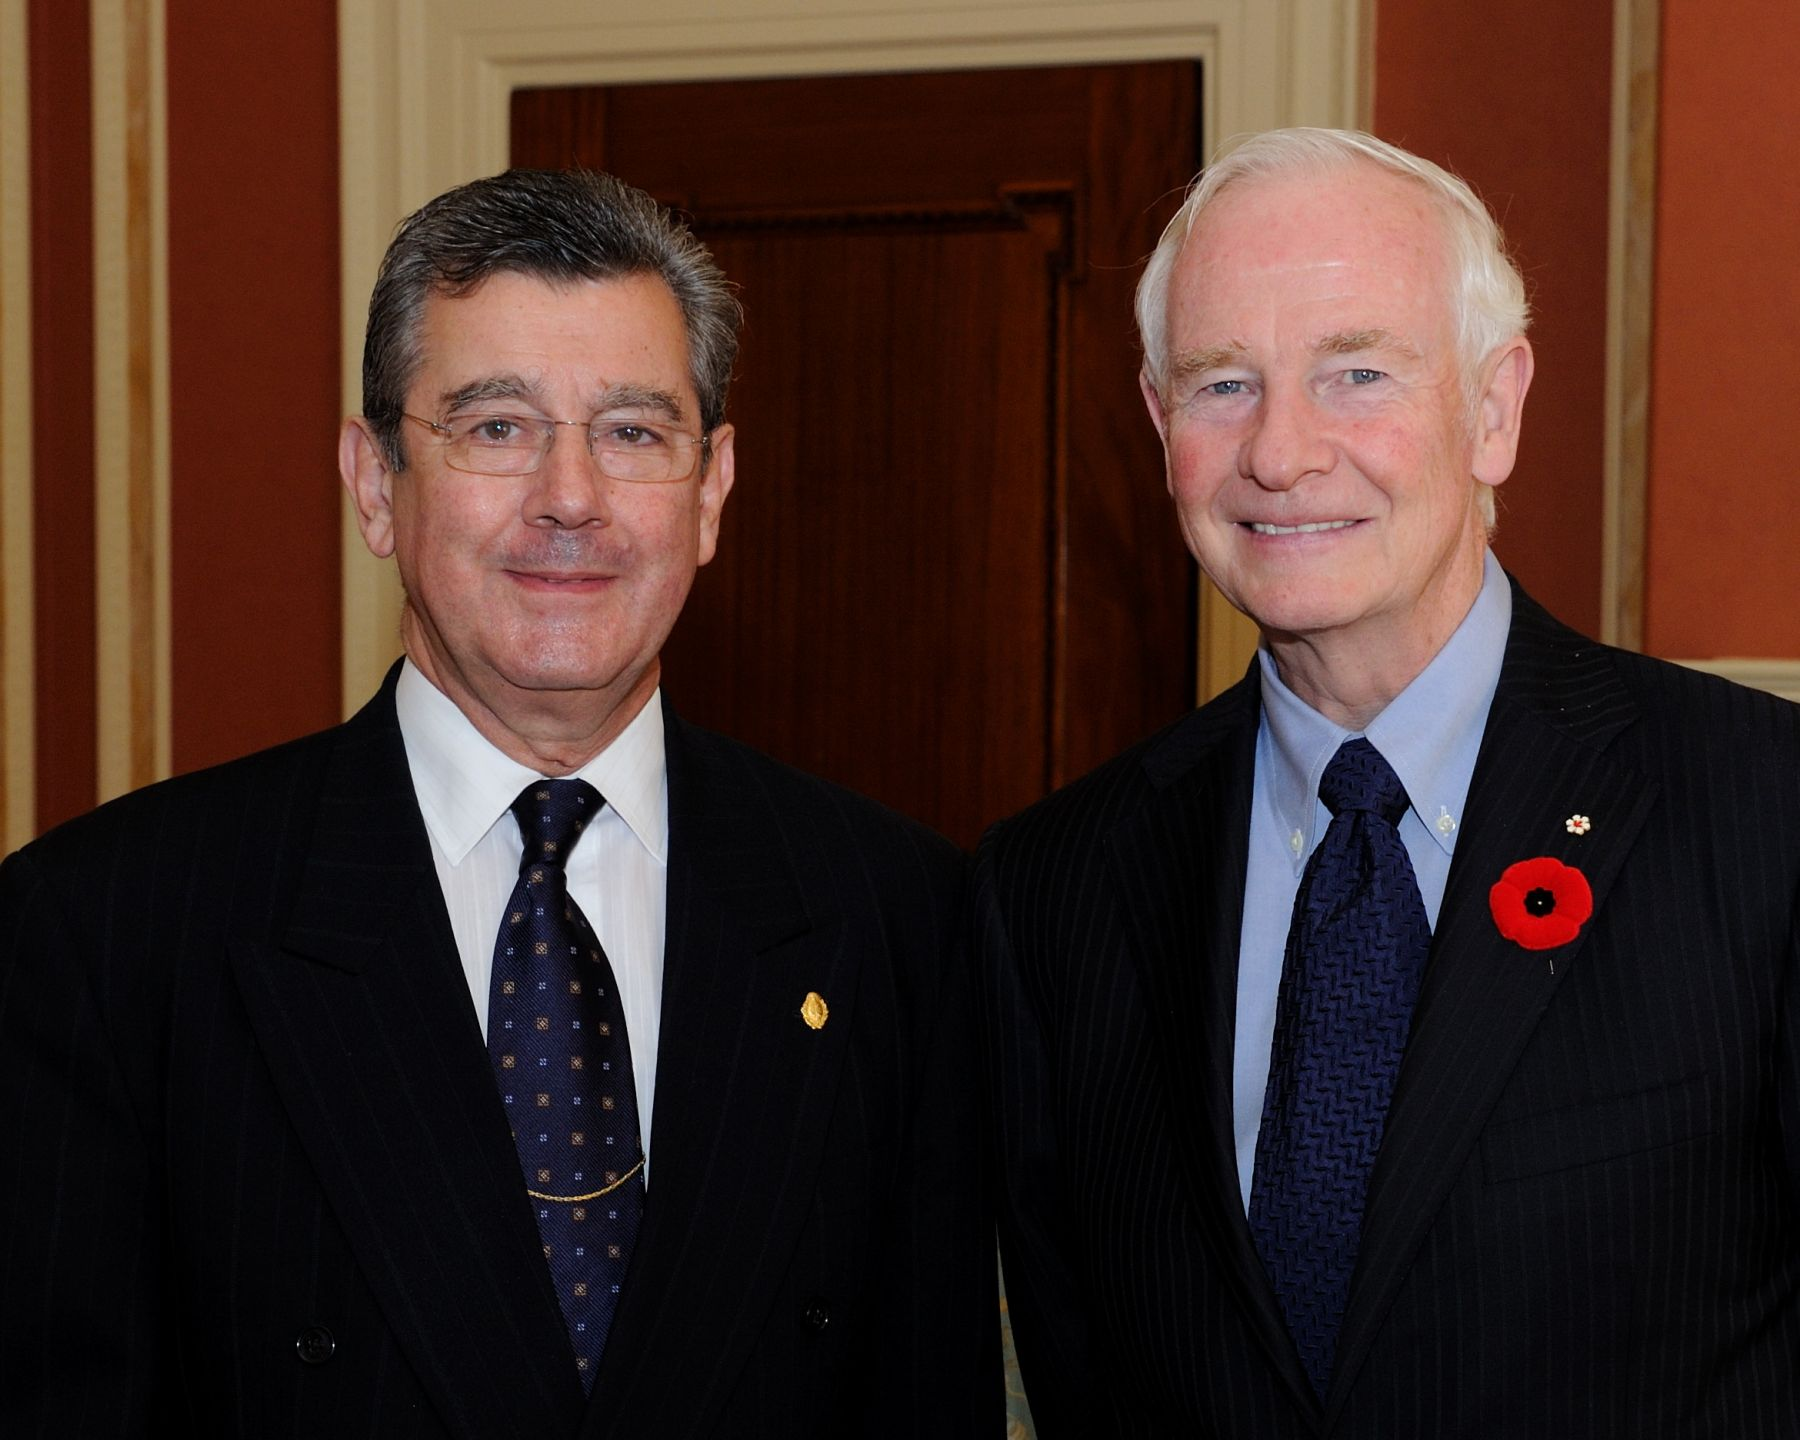 His Excellency the Right Honourable David Johnston, Governor General of Canada, received the credentials of His Excellency Elbio Oscar Rosselli Frieri, Ambassador of the Eastern Republic of Uruguay.